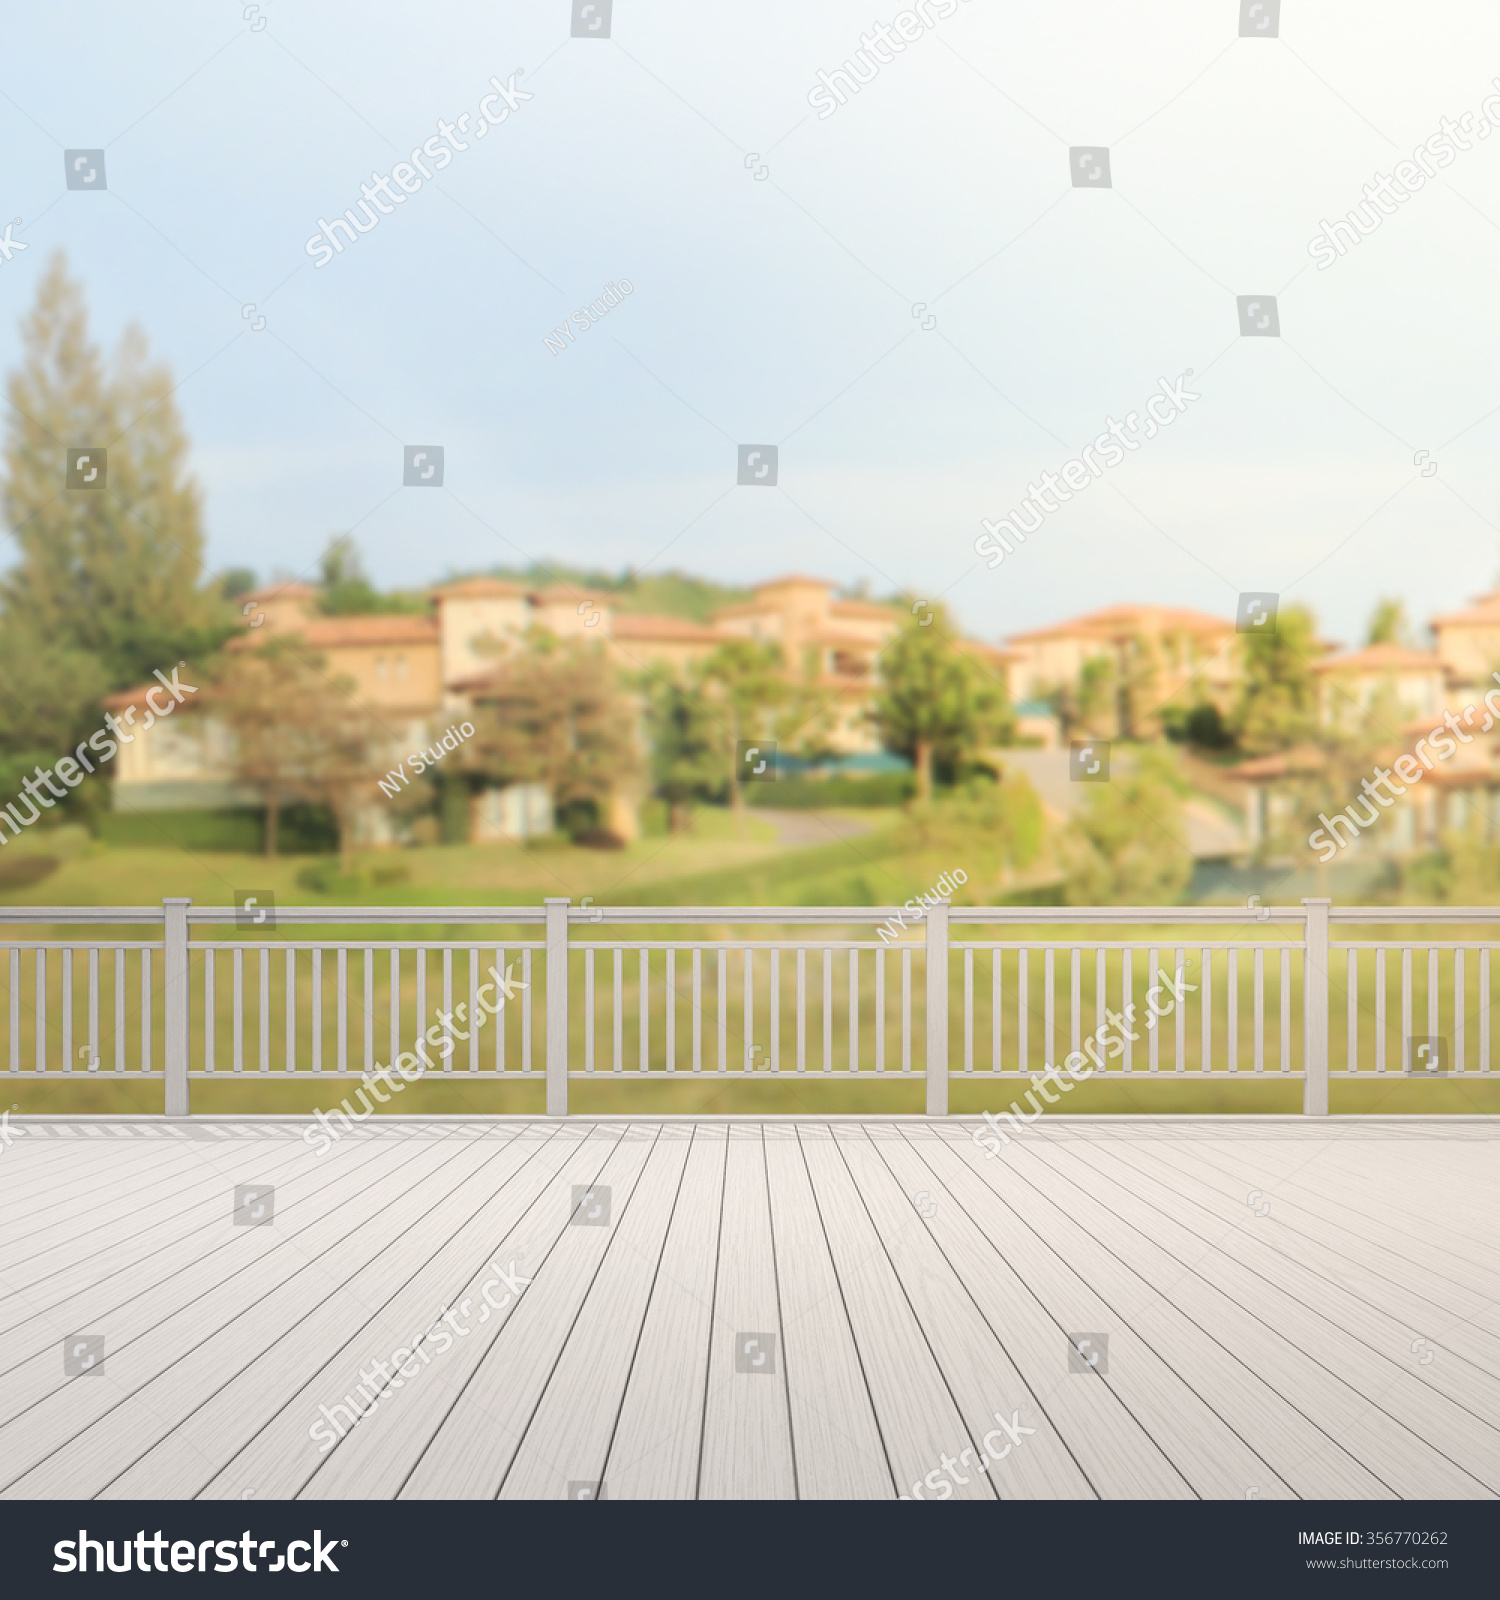 Balcony terrace blur exterior background stock photo for Exterior background